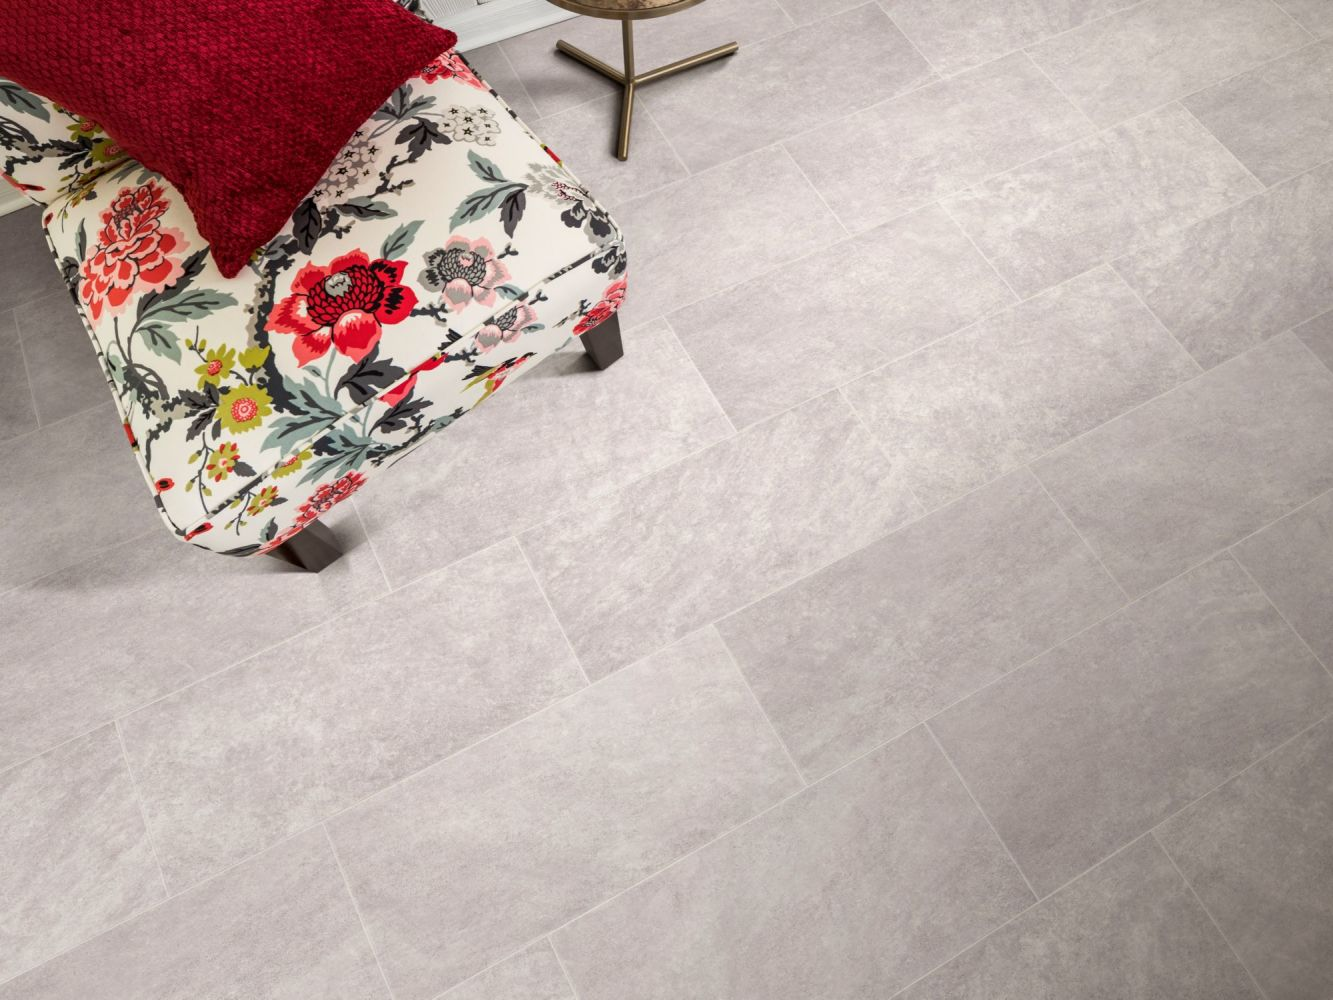 Shaw Floors Resilient Property Solutions Compact 12 Horizons 00599_VG061